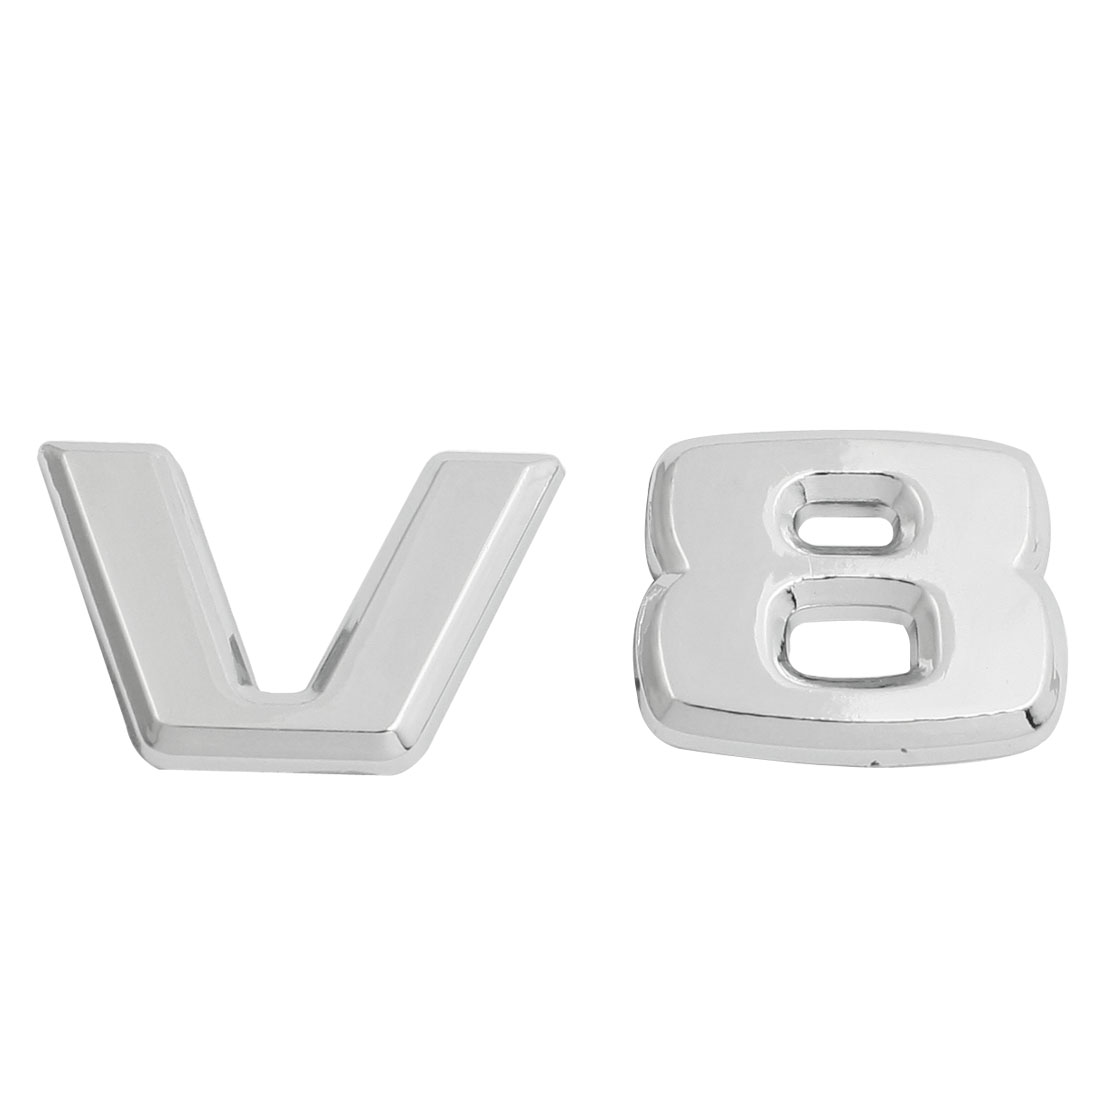 Silver Tone Plastic V8 Pattern Car Badge Sticker Emblem Decor